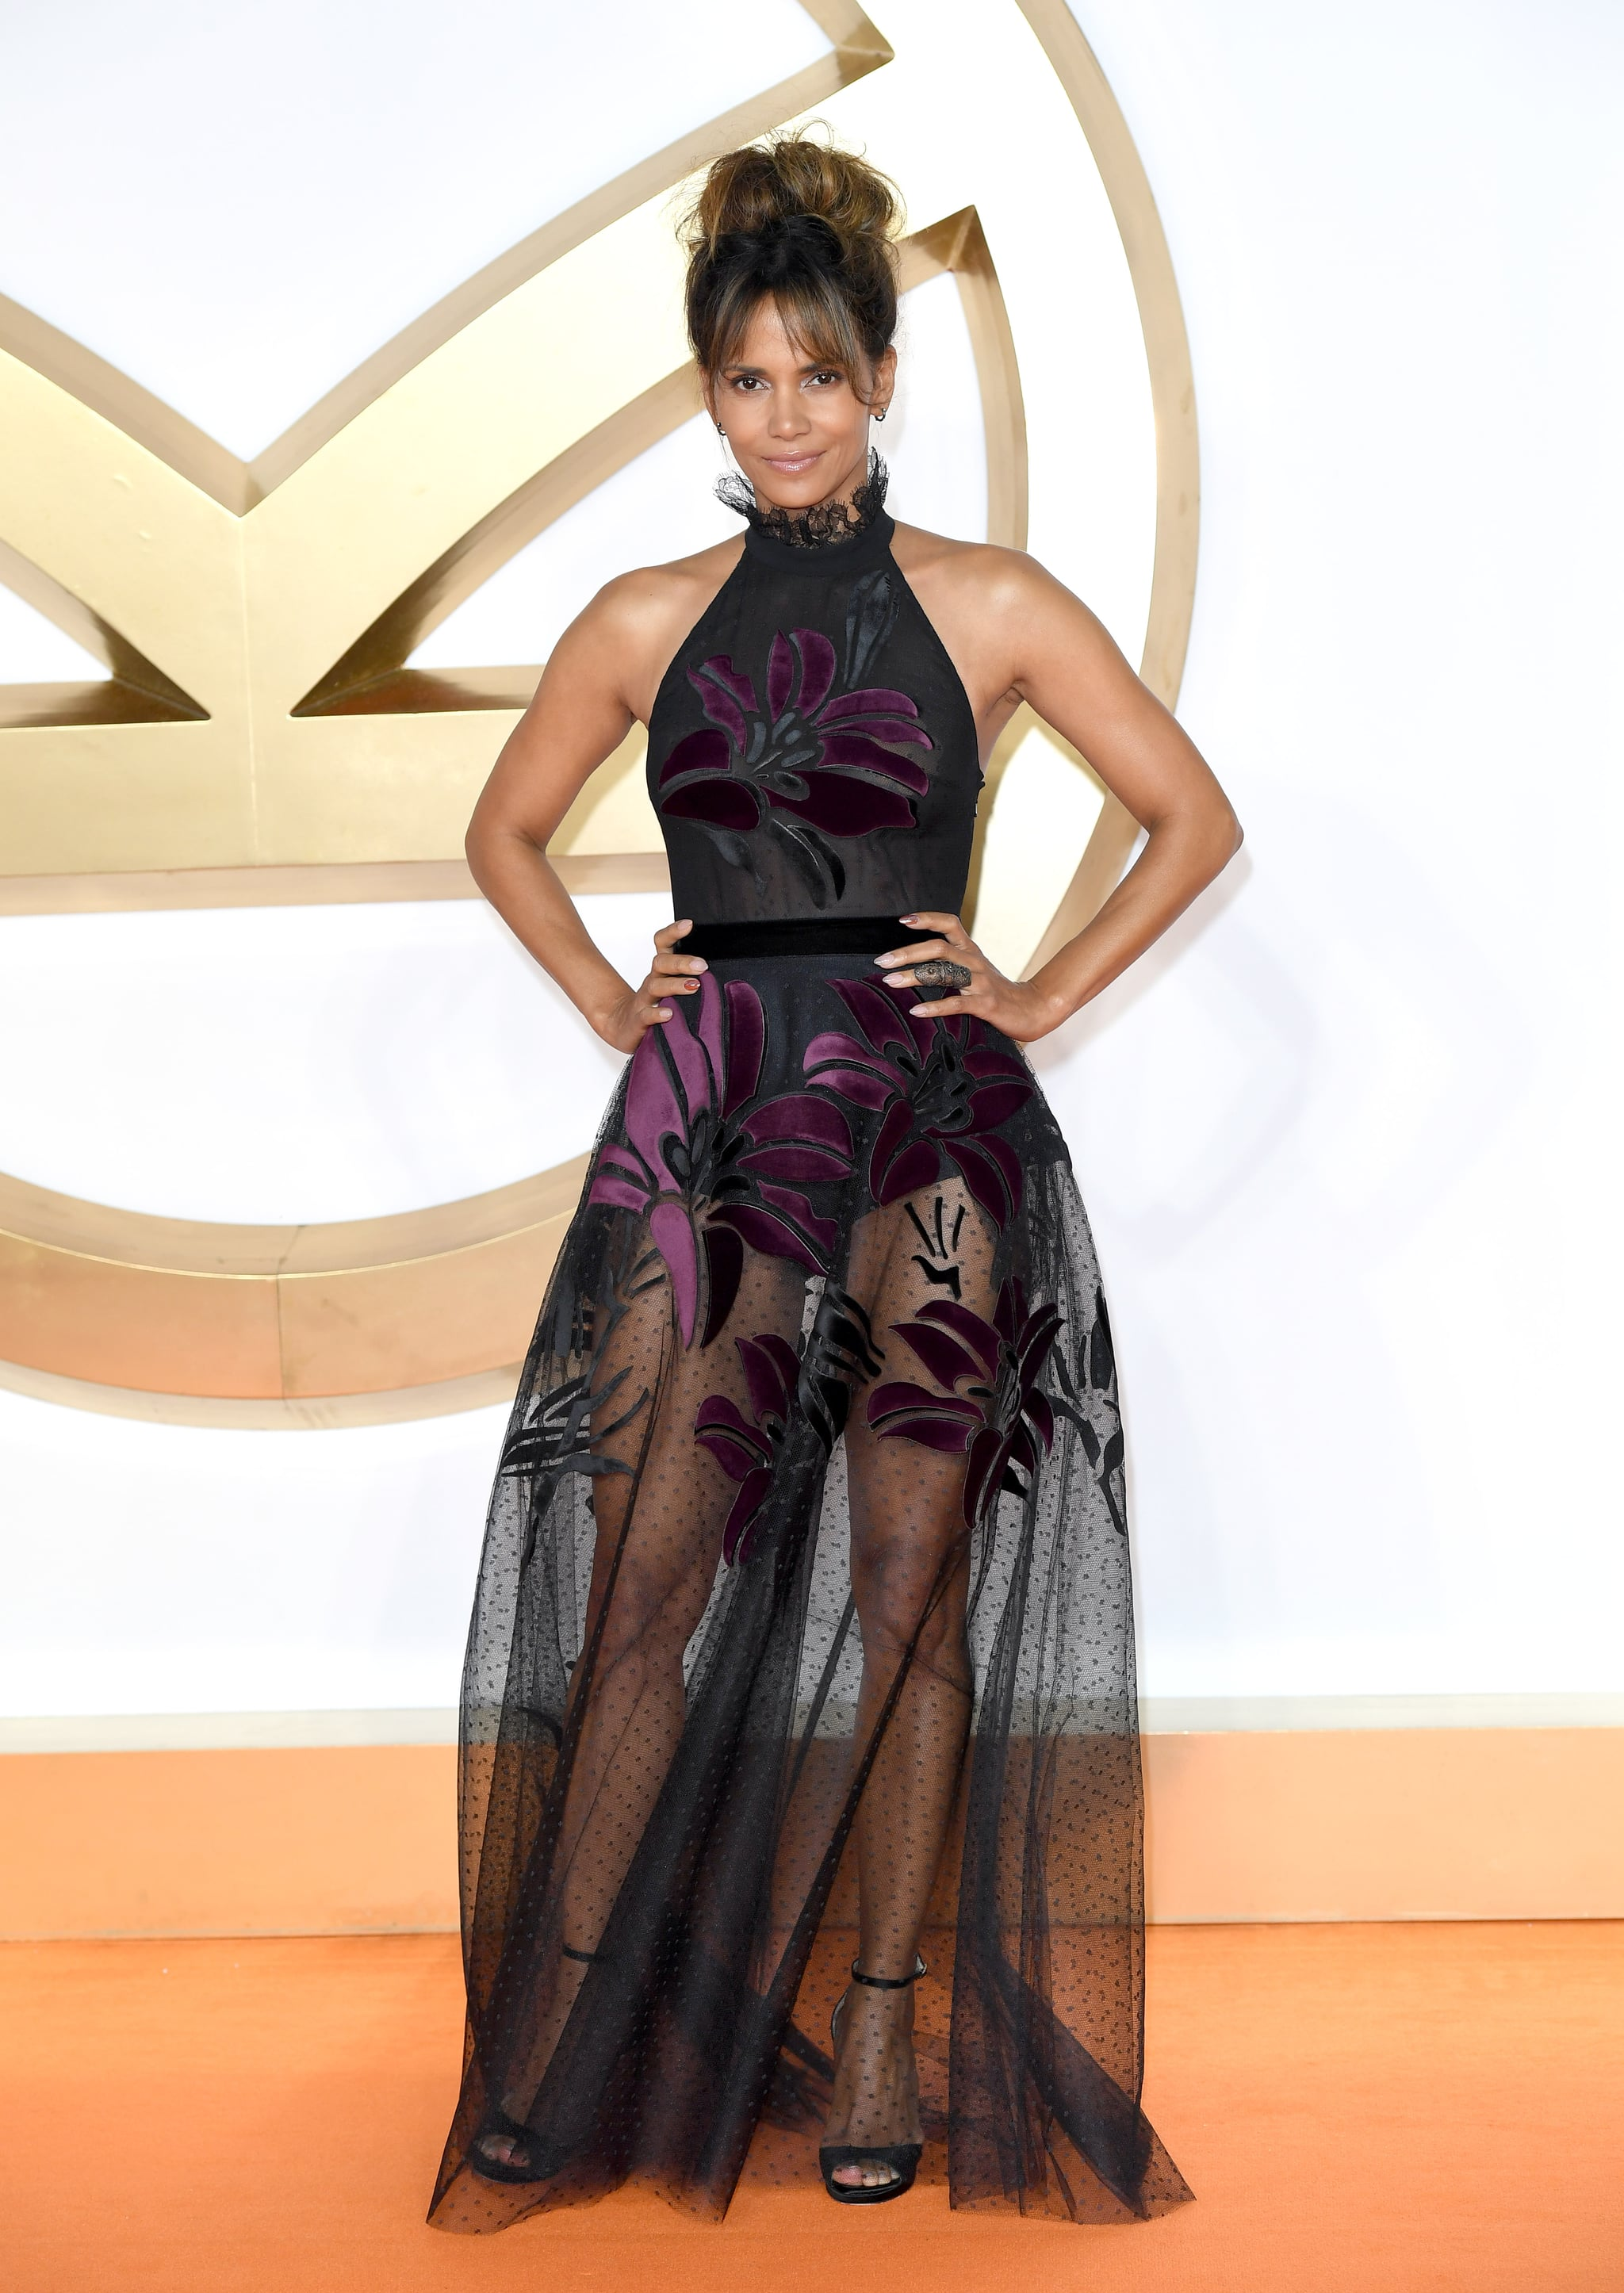 LONDON, ENGLAND - SEPTEMBER 18:  Halle Berry attends the 'Kingsman: The Golden Circle' World Premiere at Odeon Leicester Square on September 18, 2017 in London, England.  (Photo by Karwai Tang/WireImage)